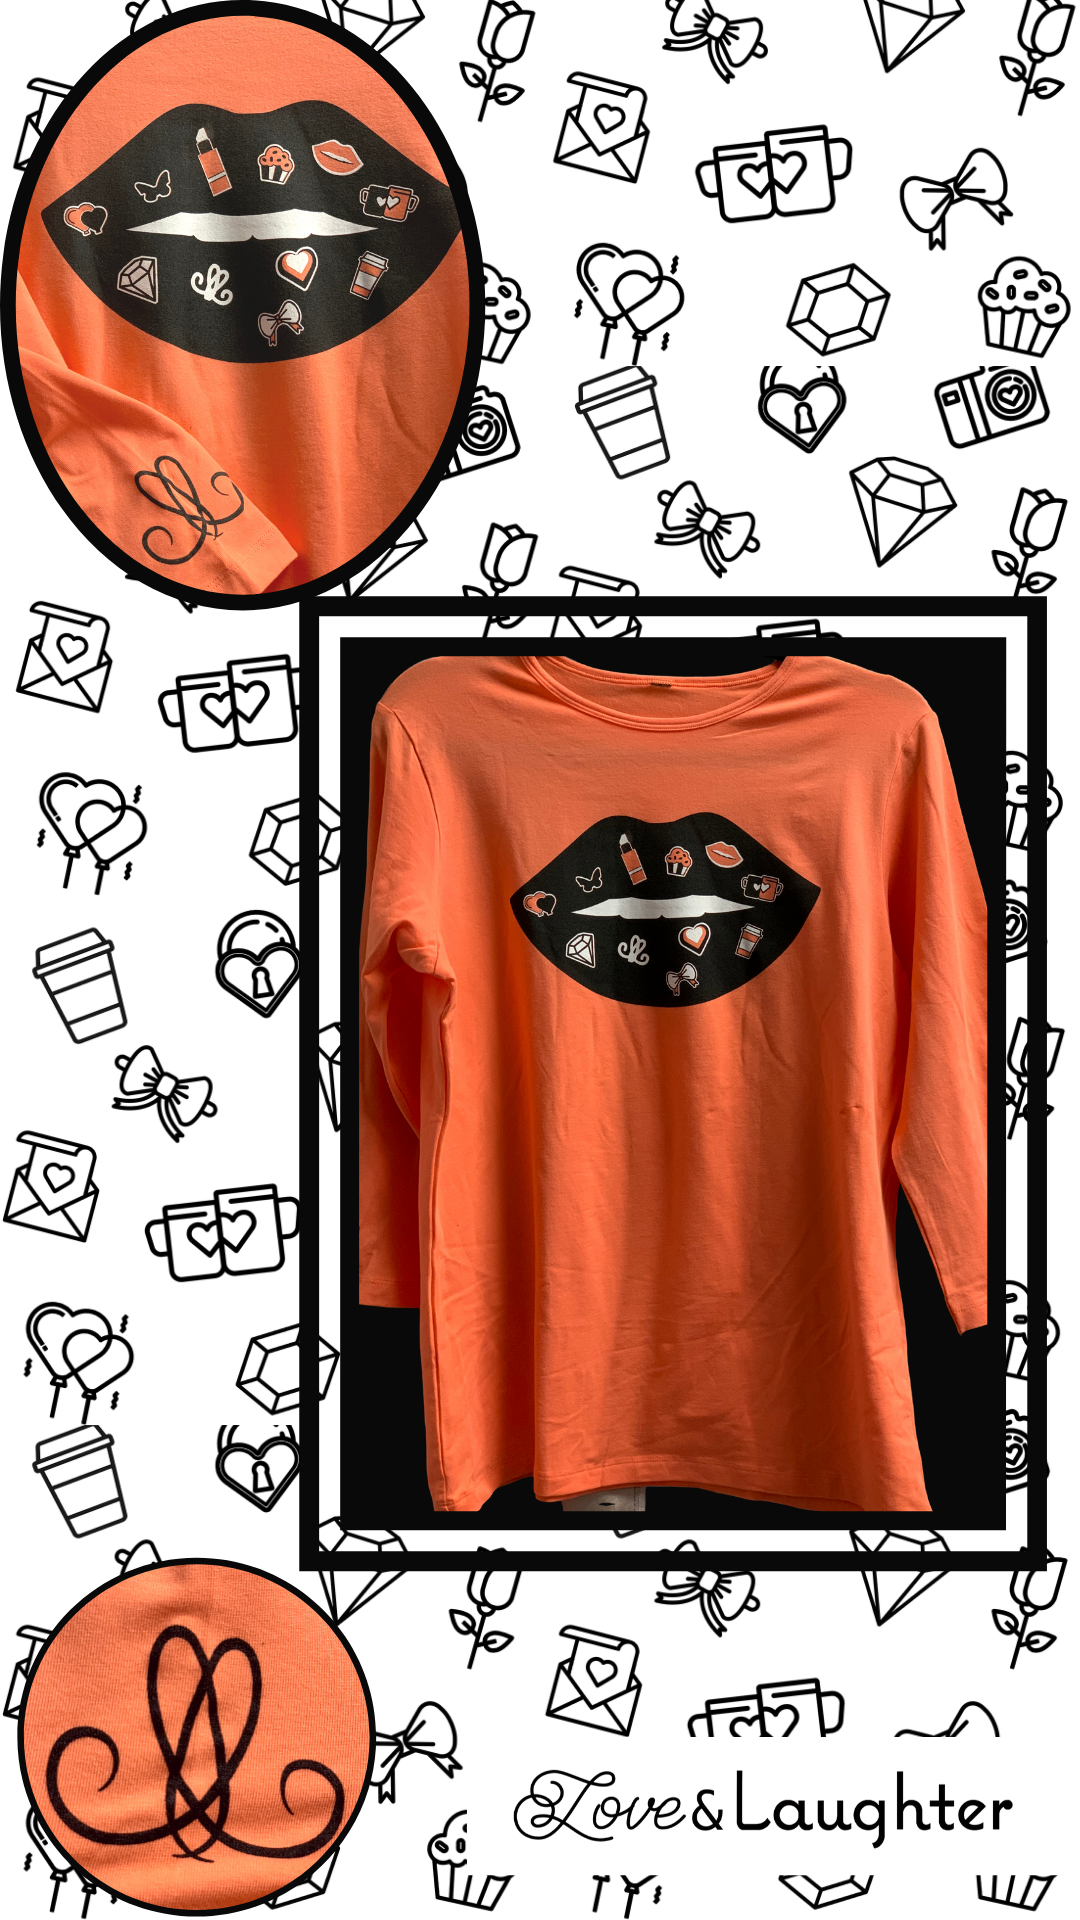 Limited Edition Read My Lips Tee